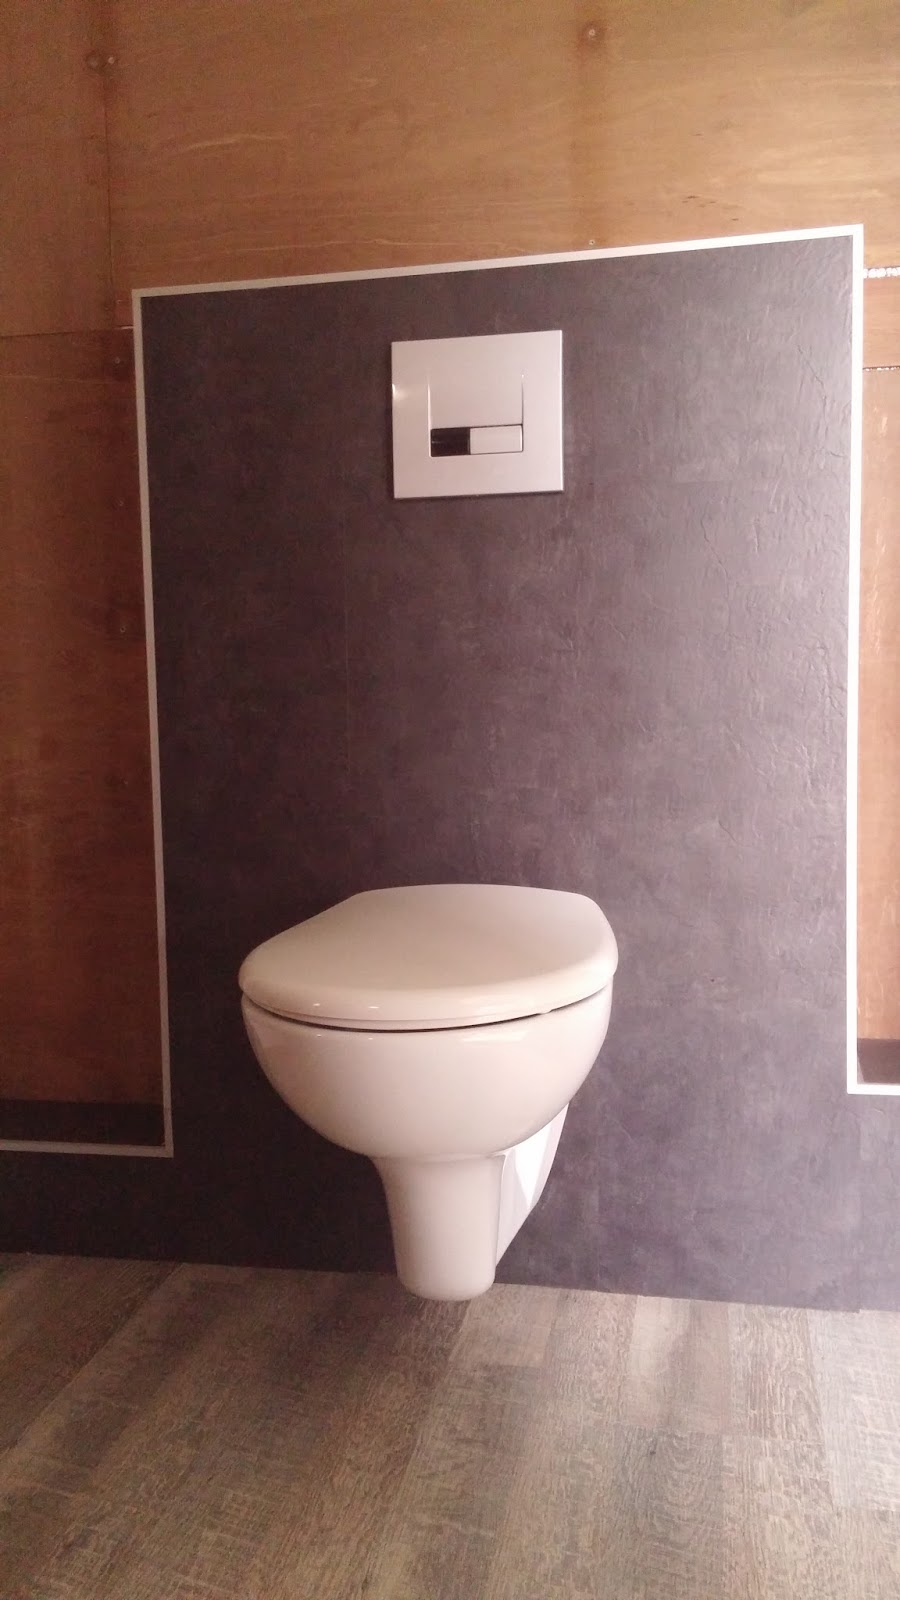 Achterwand Toilet Toilet Achterwand Top Achterwand Toilet In Himac Uitgefreesd With